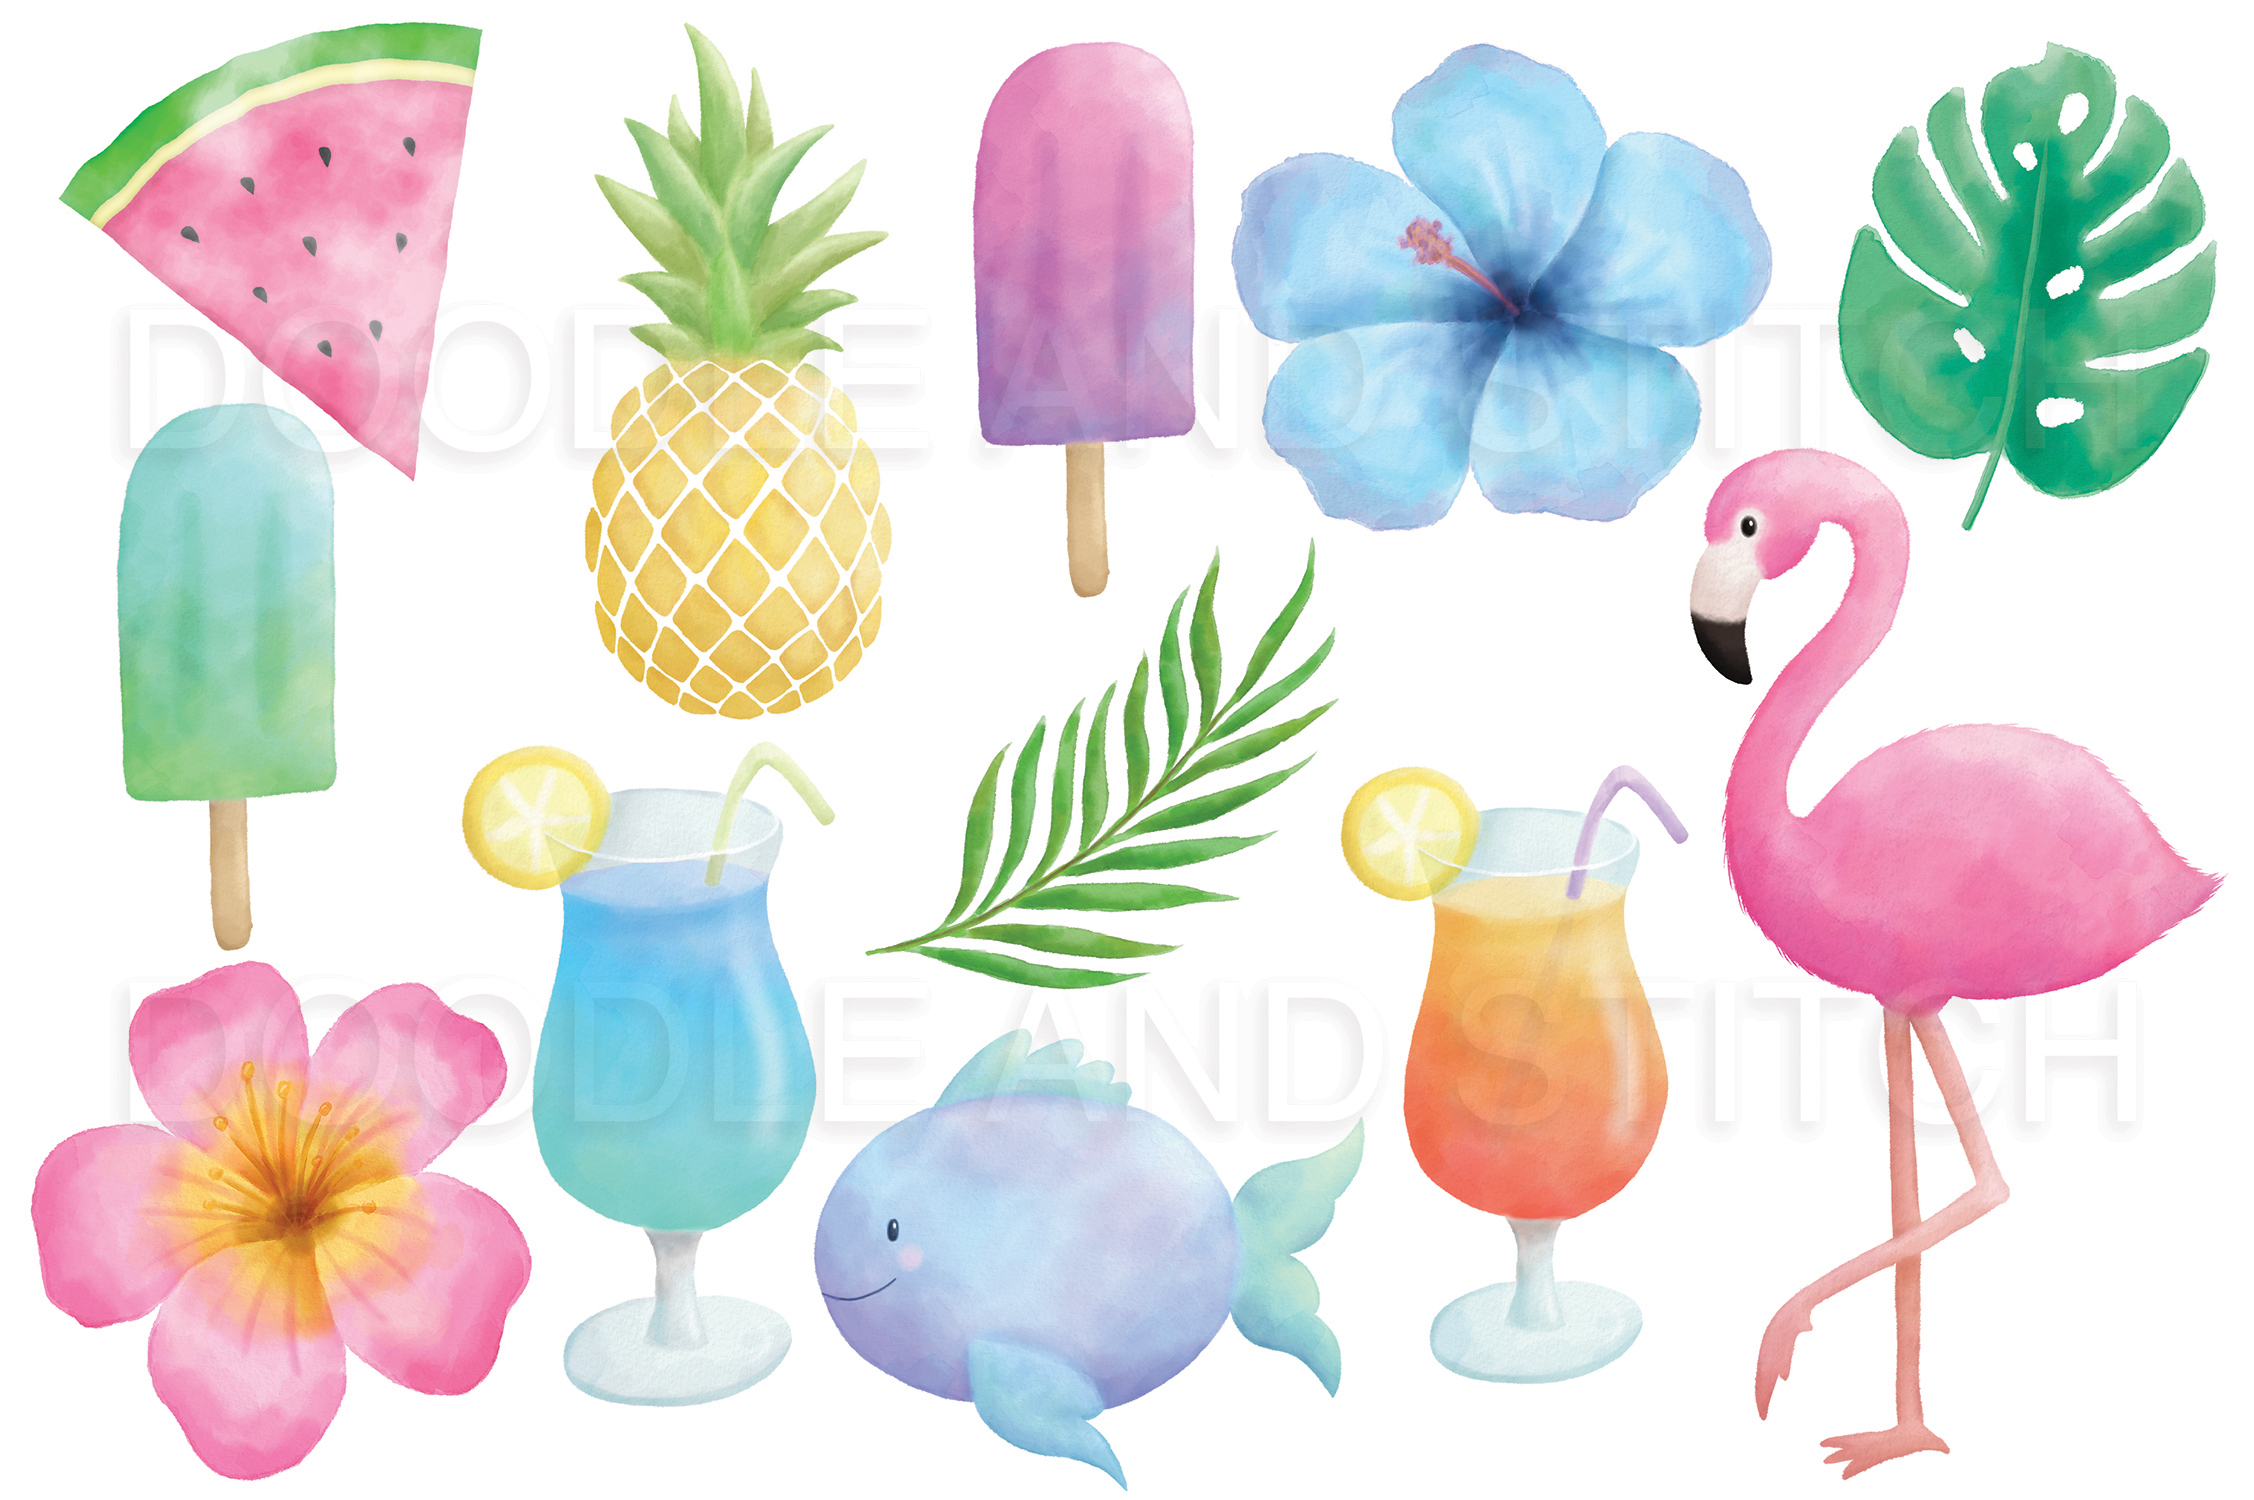 Tropical Watercolor Illustrations example image 2